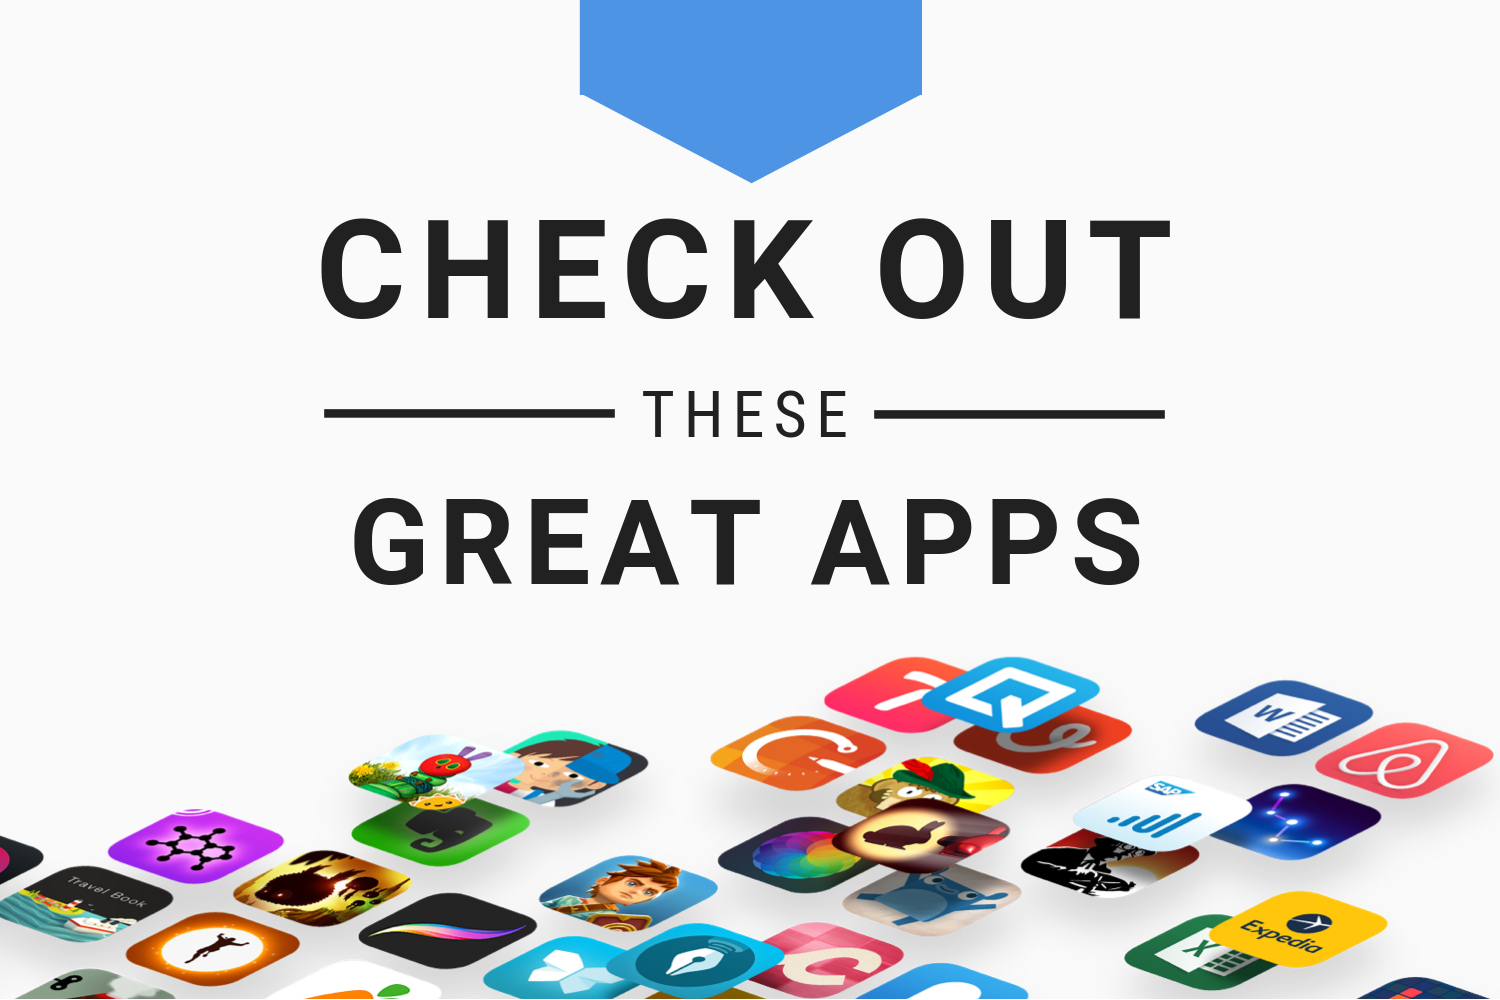 Sift, PicAlong, Itinerant and other apps to check out this weekend